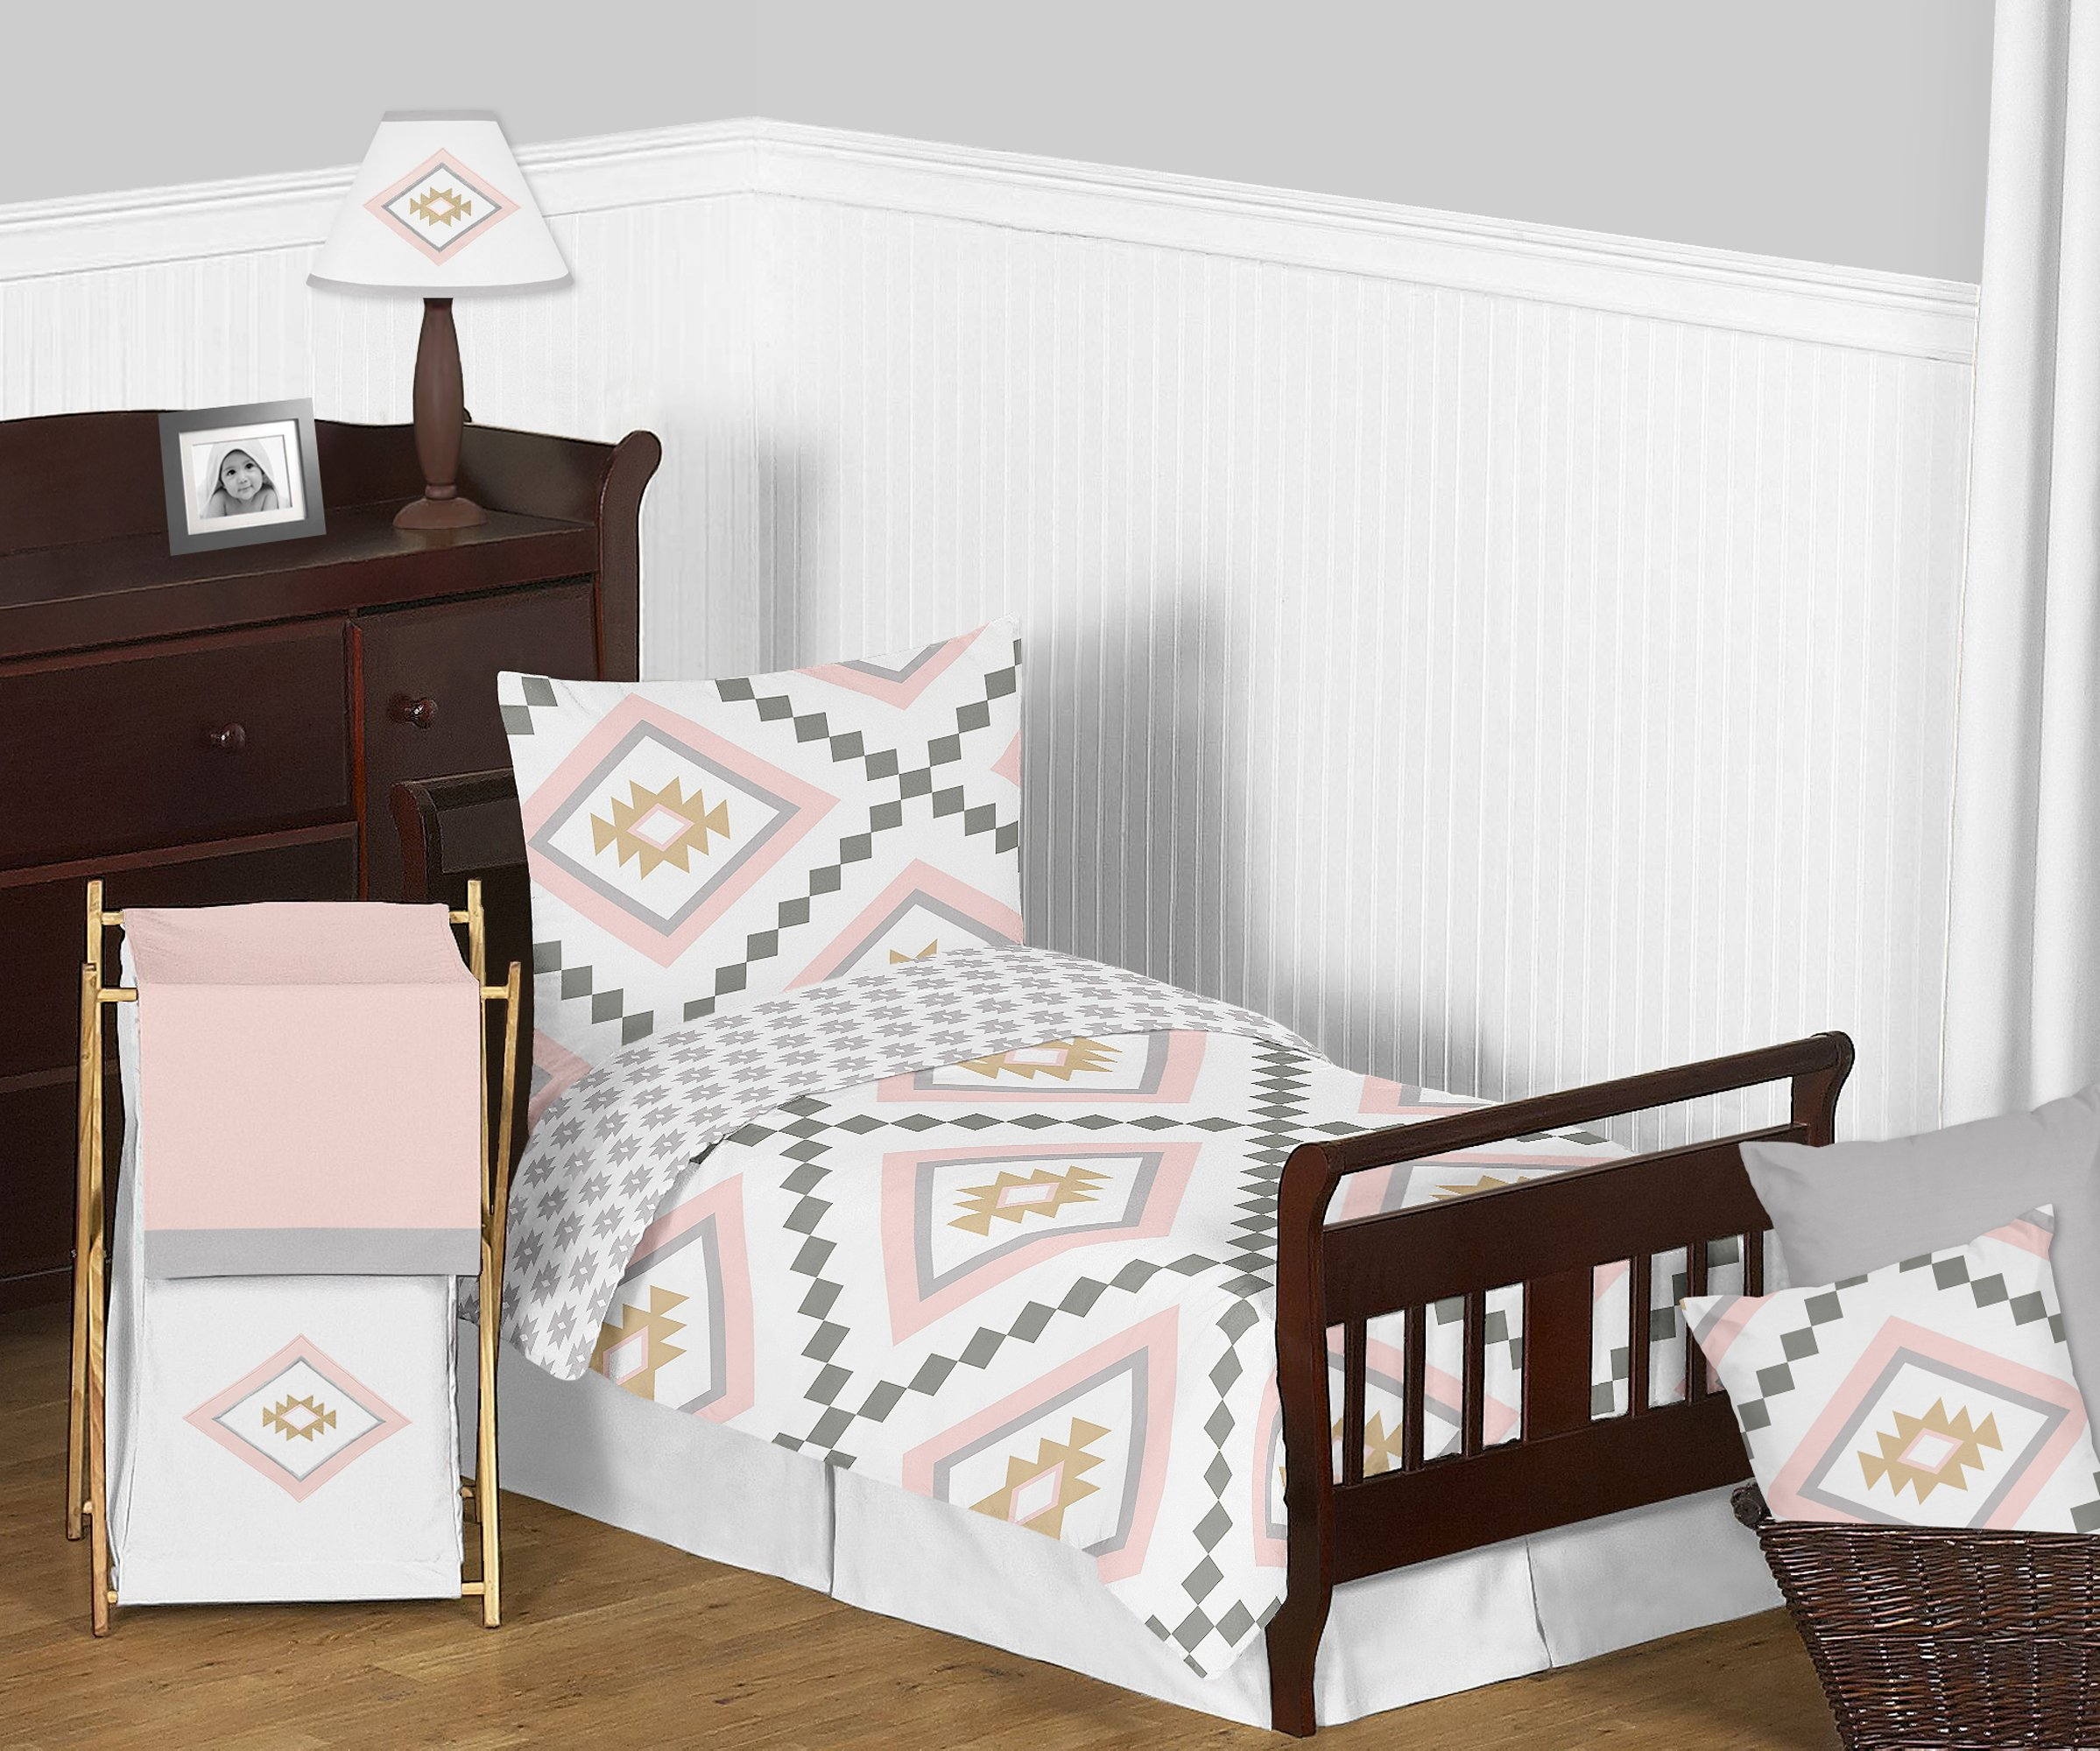 Sweet Jojo Designs 5-Piece Blush Pink and Grey Boho and Tribal Aztec Girl Toddler Kid Childrens Bedding Set s Comforter, Sham and Sheets